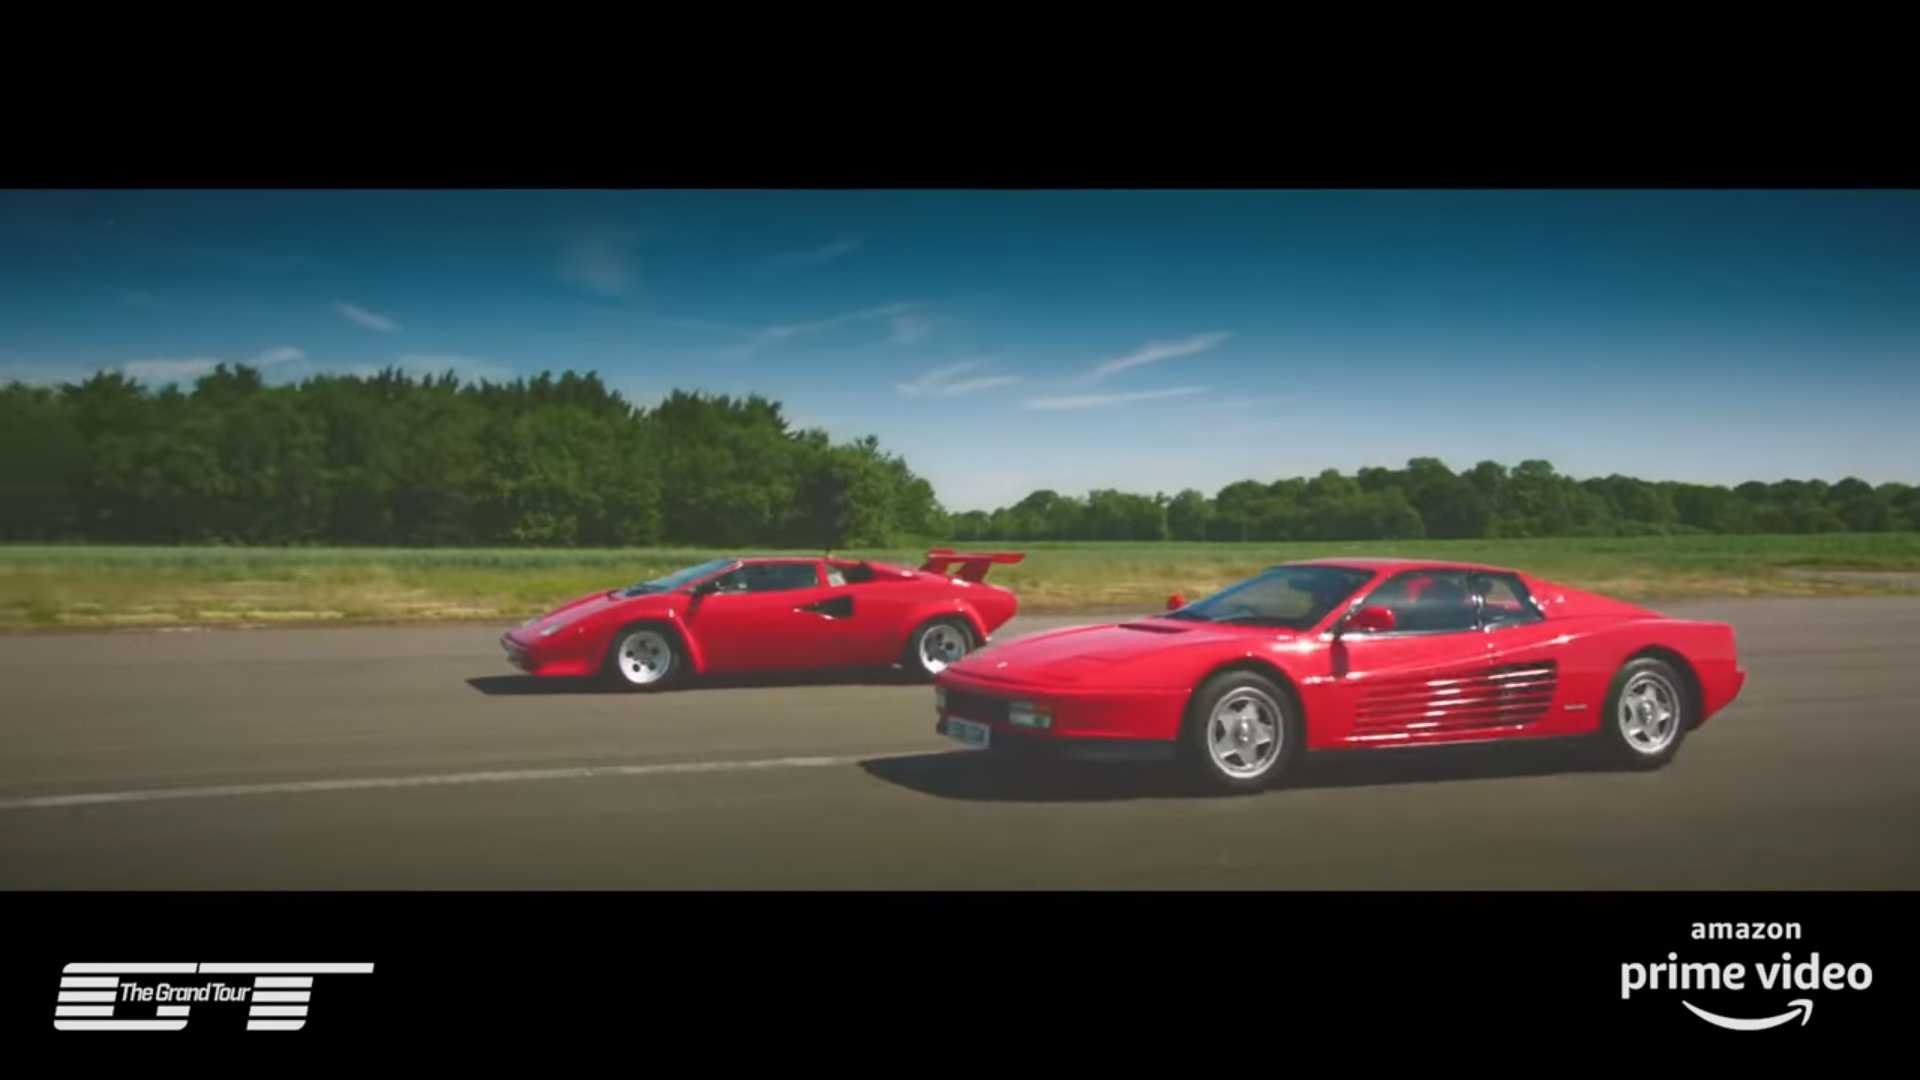 James May and Richard Hammond, hosts of The Grand Tour show, have set up an epic showdown between two iconic supercars of the twentieth century, the Lamborghini Countach and the Ferrari Testarossa